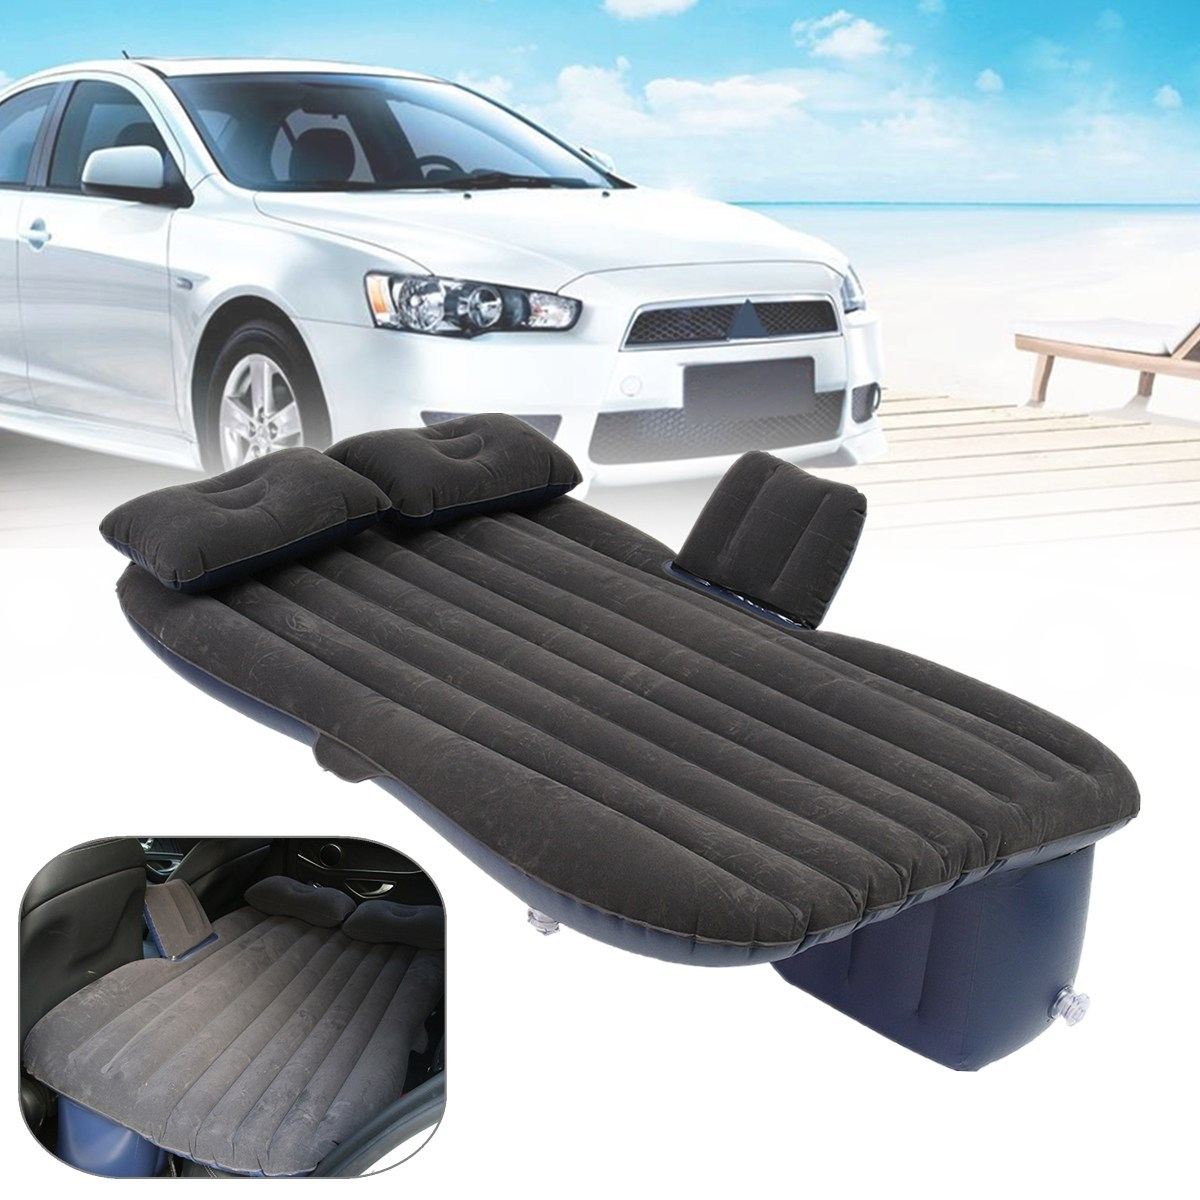 Outdoor camping Car Back Seat Cover Air Mattress Travel Mat Bed Inflatable Mattress Air Inflatable Car Bed with Inflatable Pump universal auto back seat cover car air inflation mattress bed drive travel car inflatable bed wave design with air pump